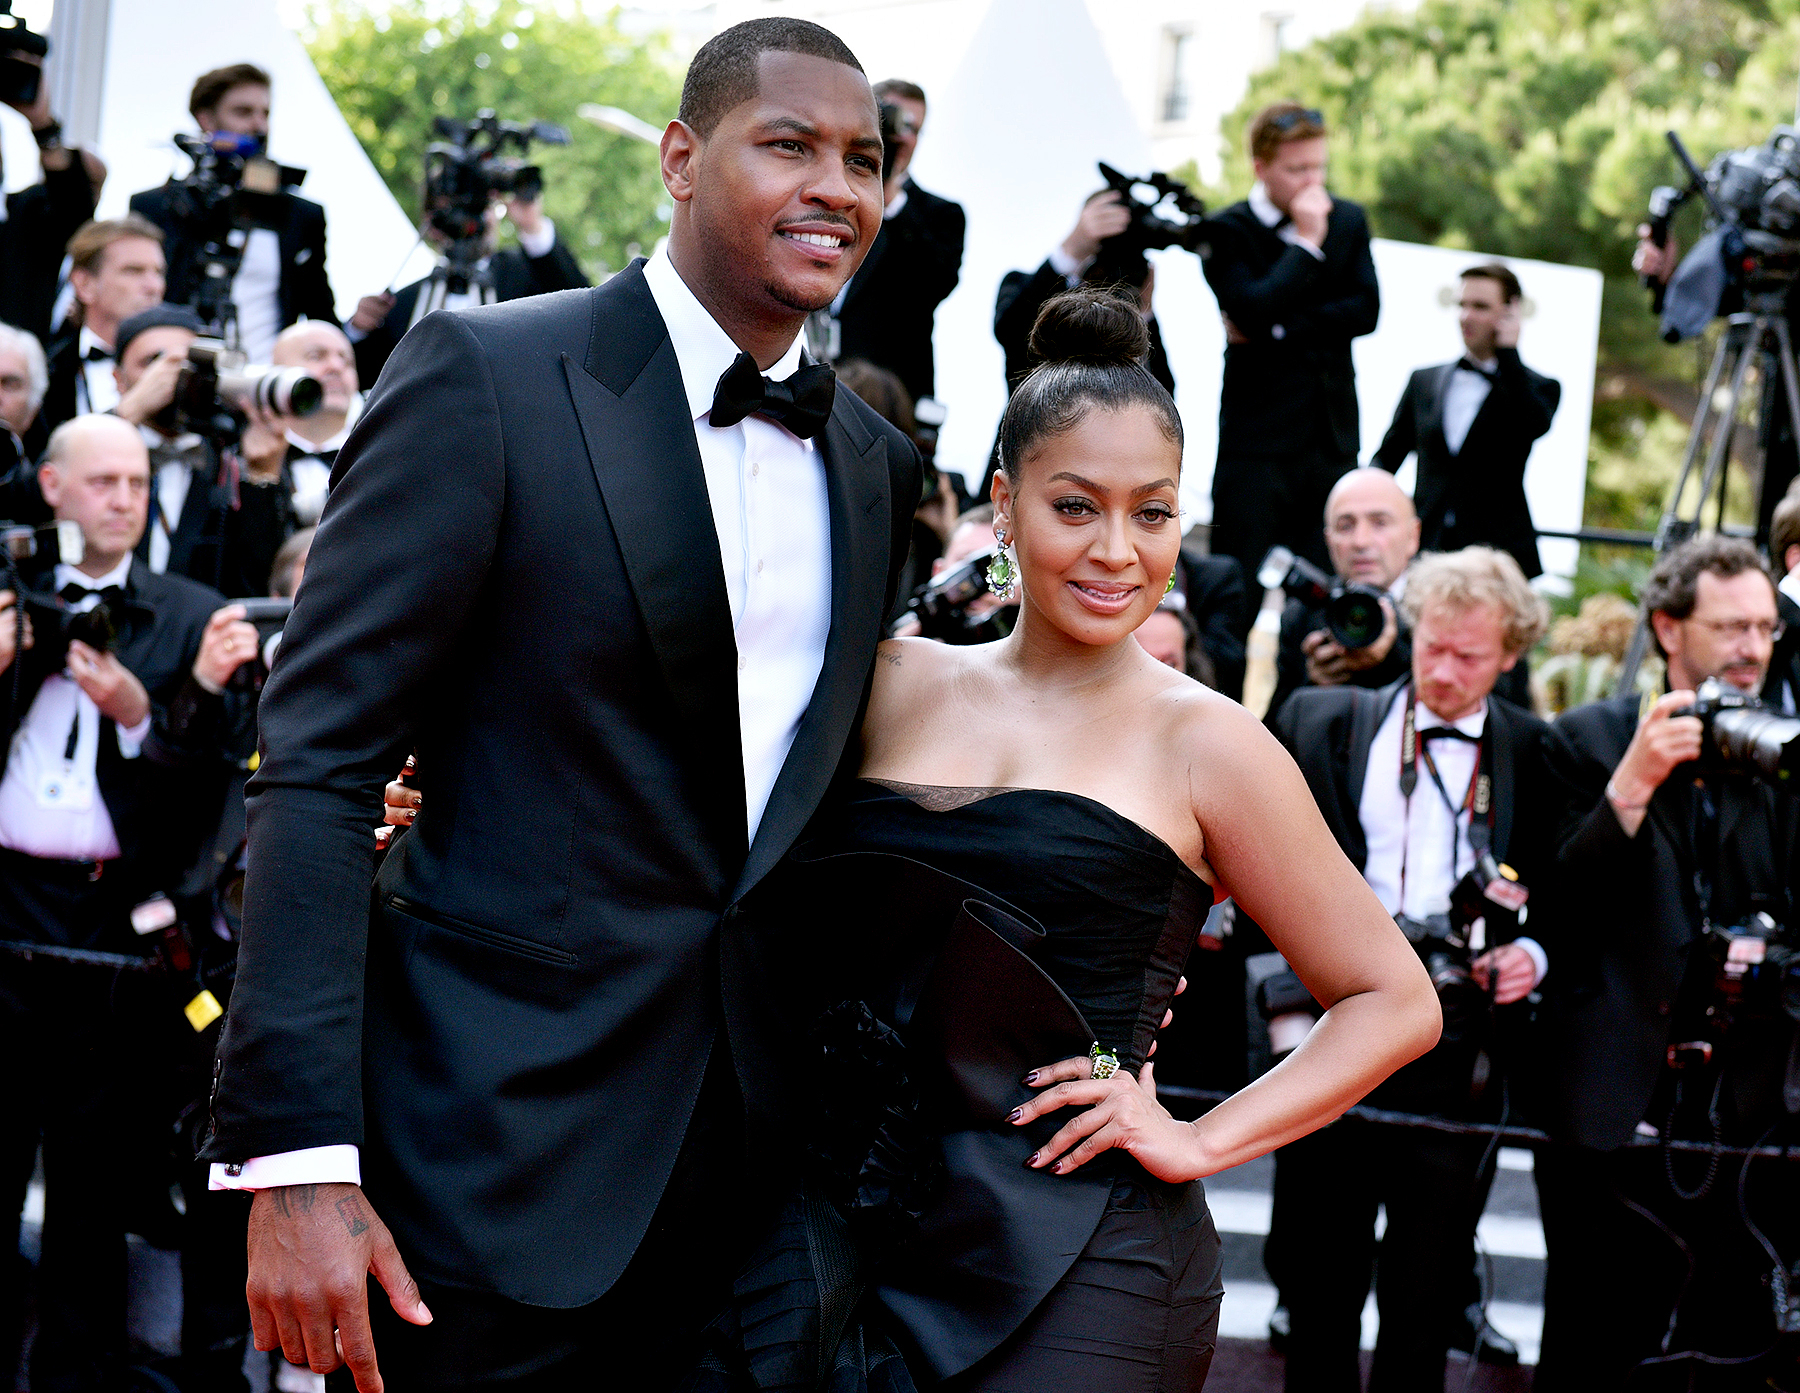 Carmelo Anthony and La La Anthony at the 'Loving' premiere during the 69th annual Cannes Film Festival at the Palais des Festivals, Cannes, France, May 16, 2016.